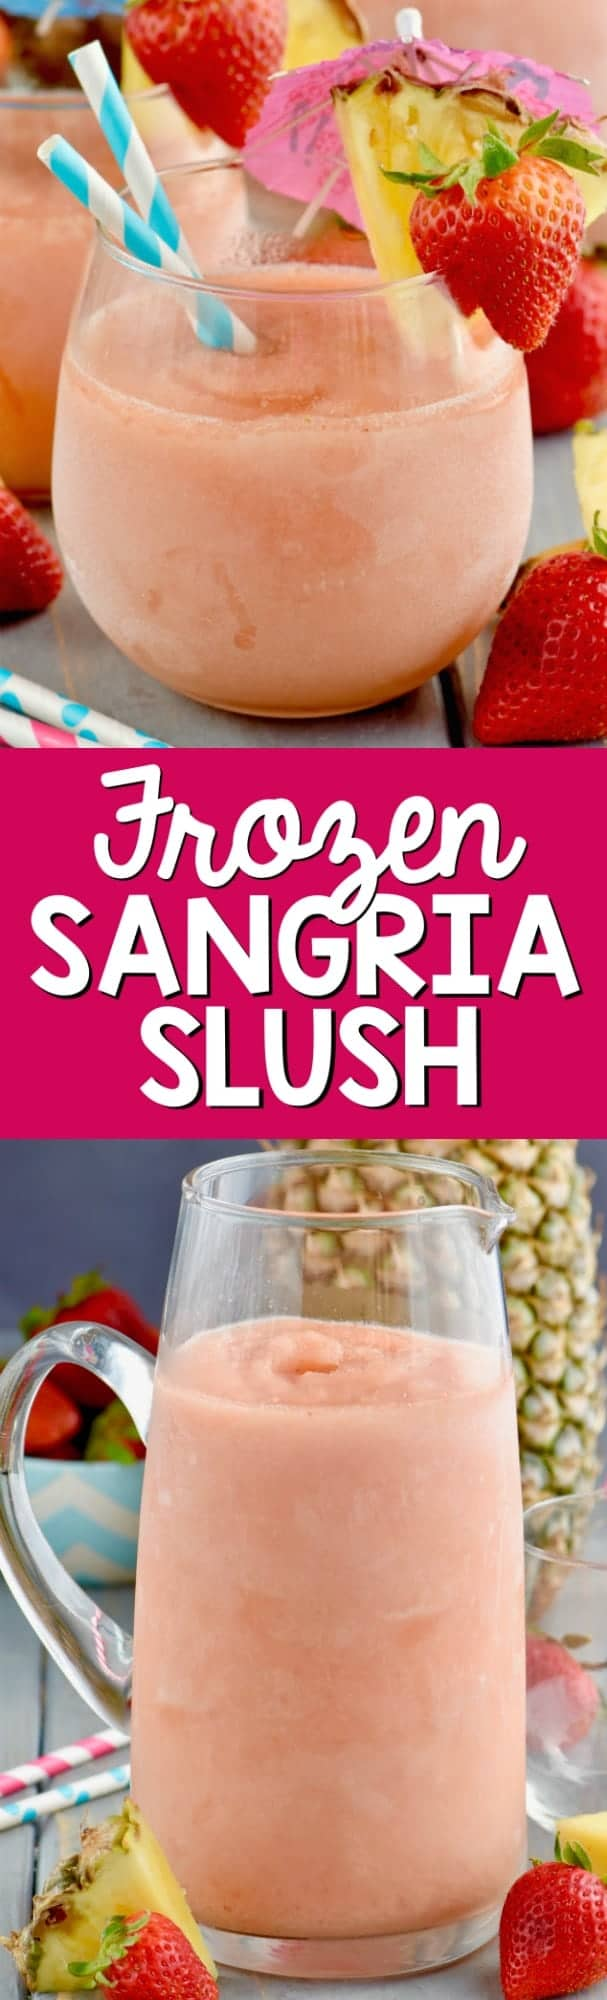 This Frozen Sangria Slush is just five ingredients, comes together in the blender, and will be the hit of the party! Make a double batch!